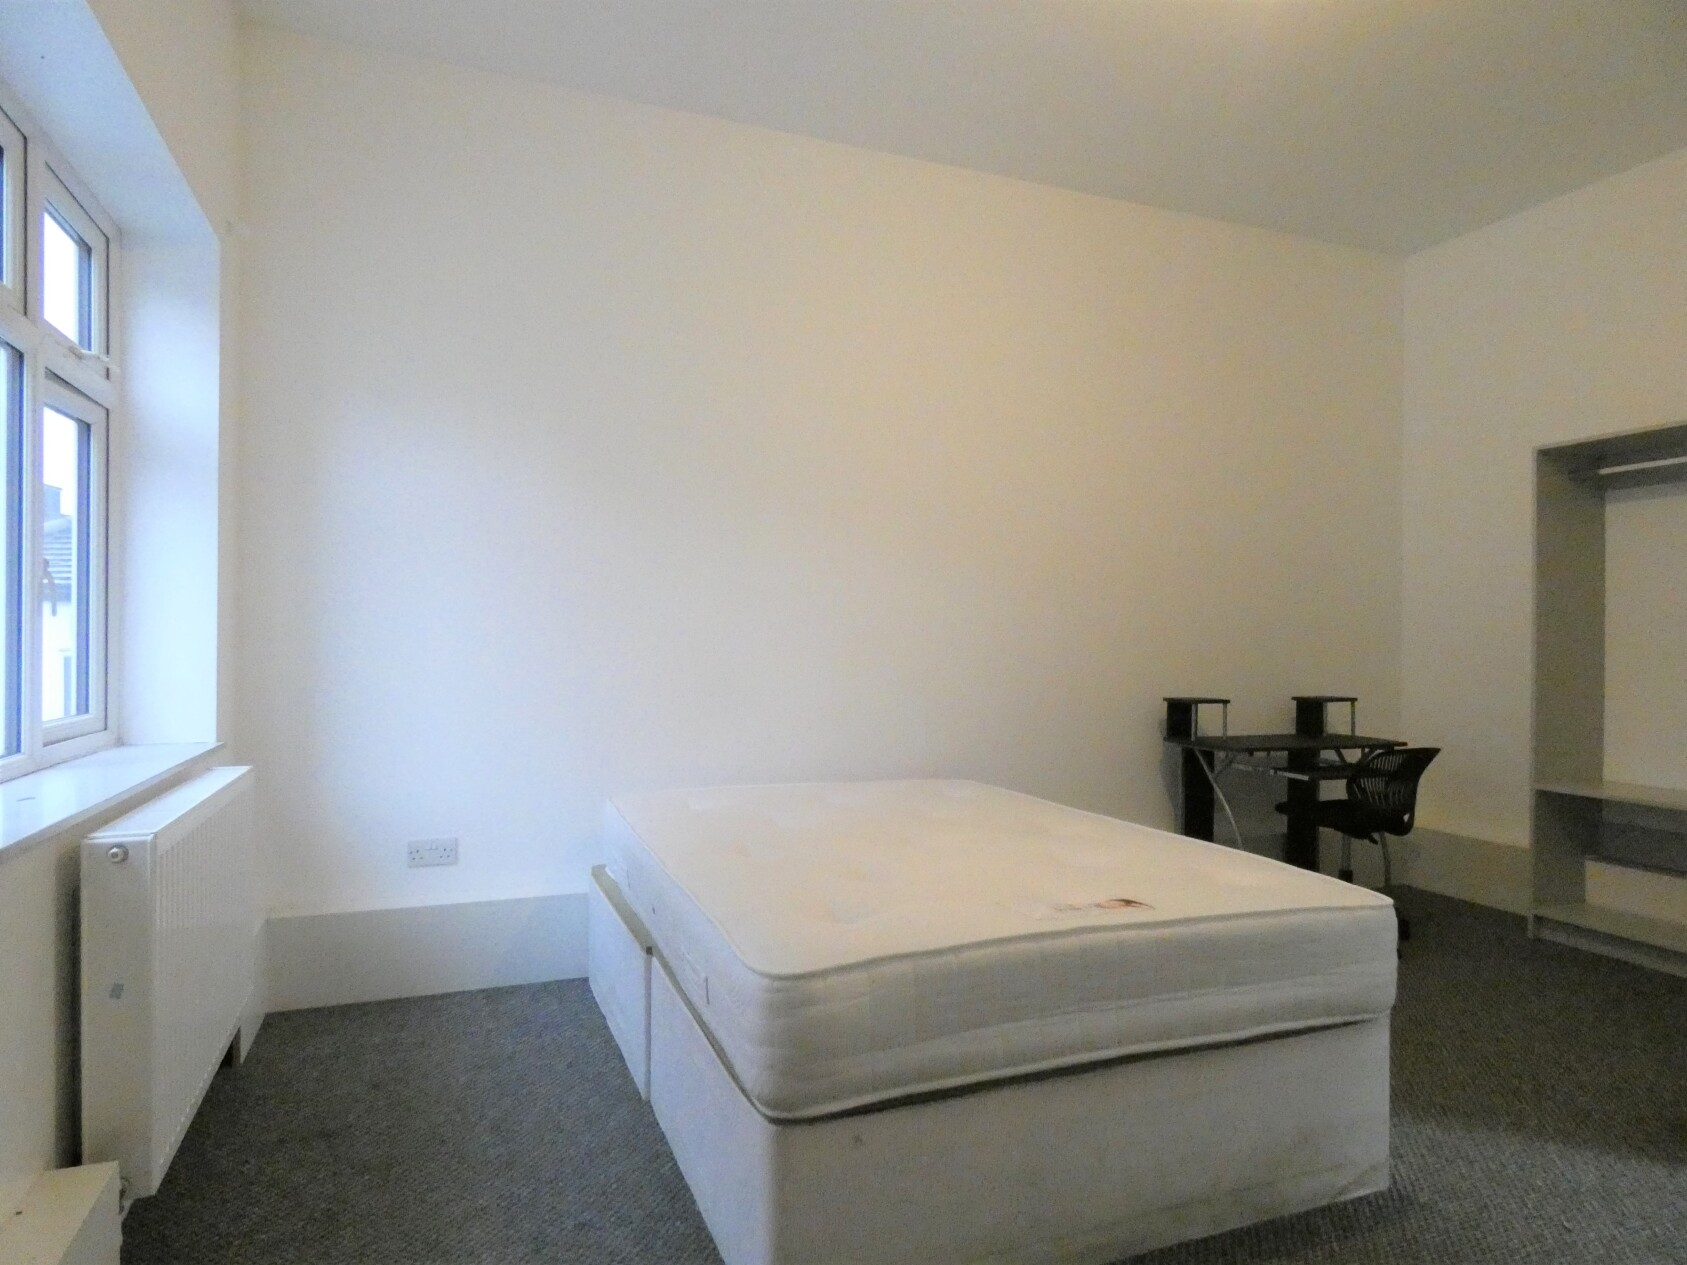 5 bedroom student apartment in Penkhull, Stoke-on-Trent